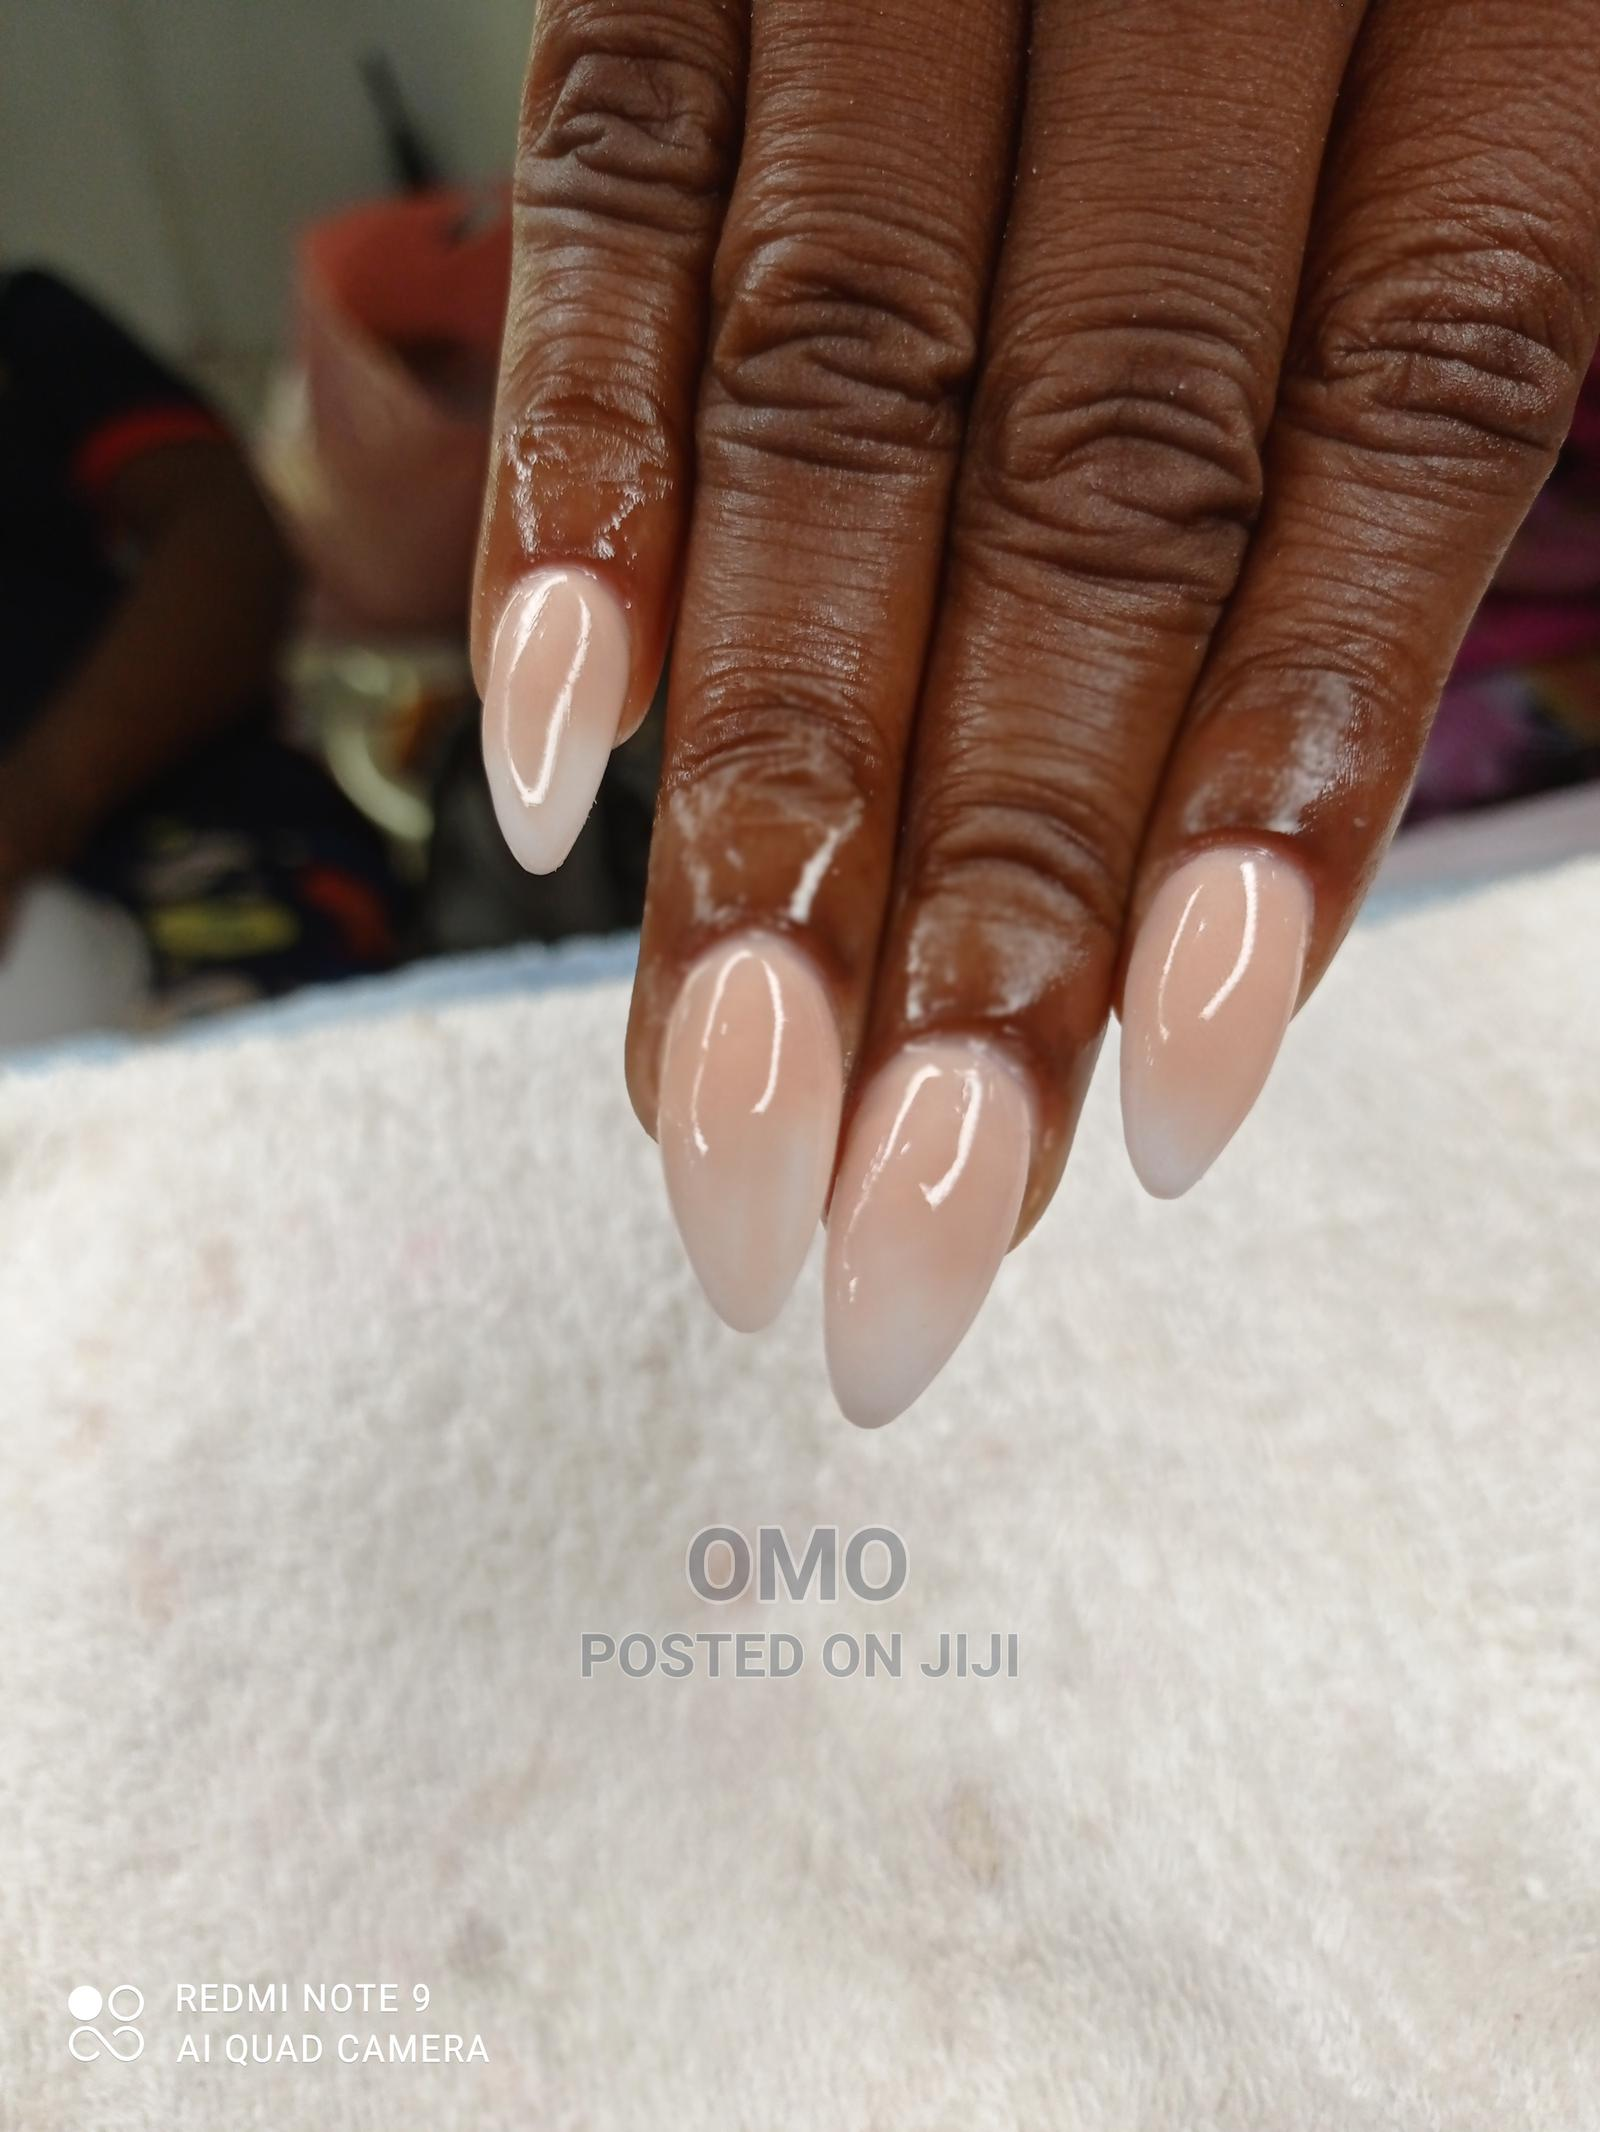 Archive: Manicure and Pedicure Services Available